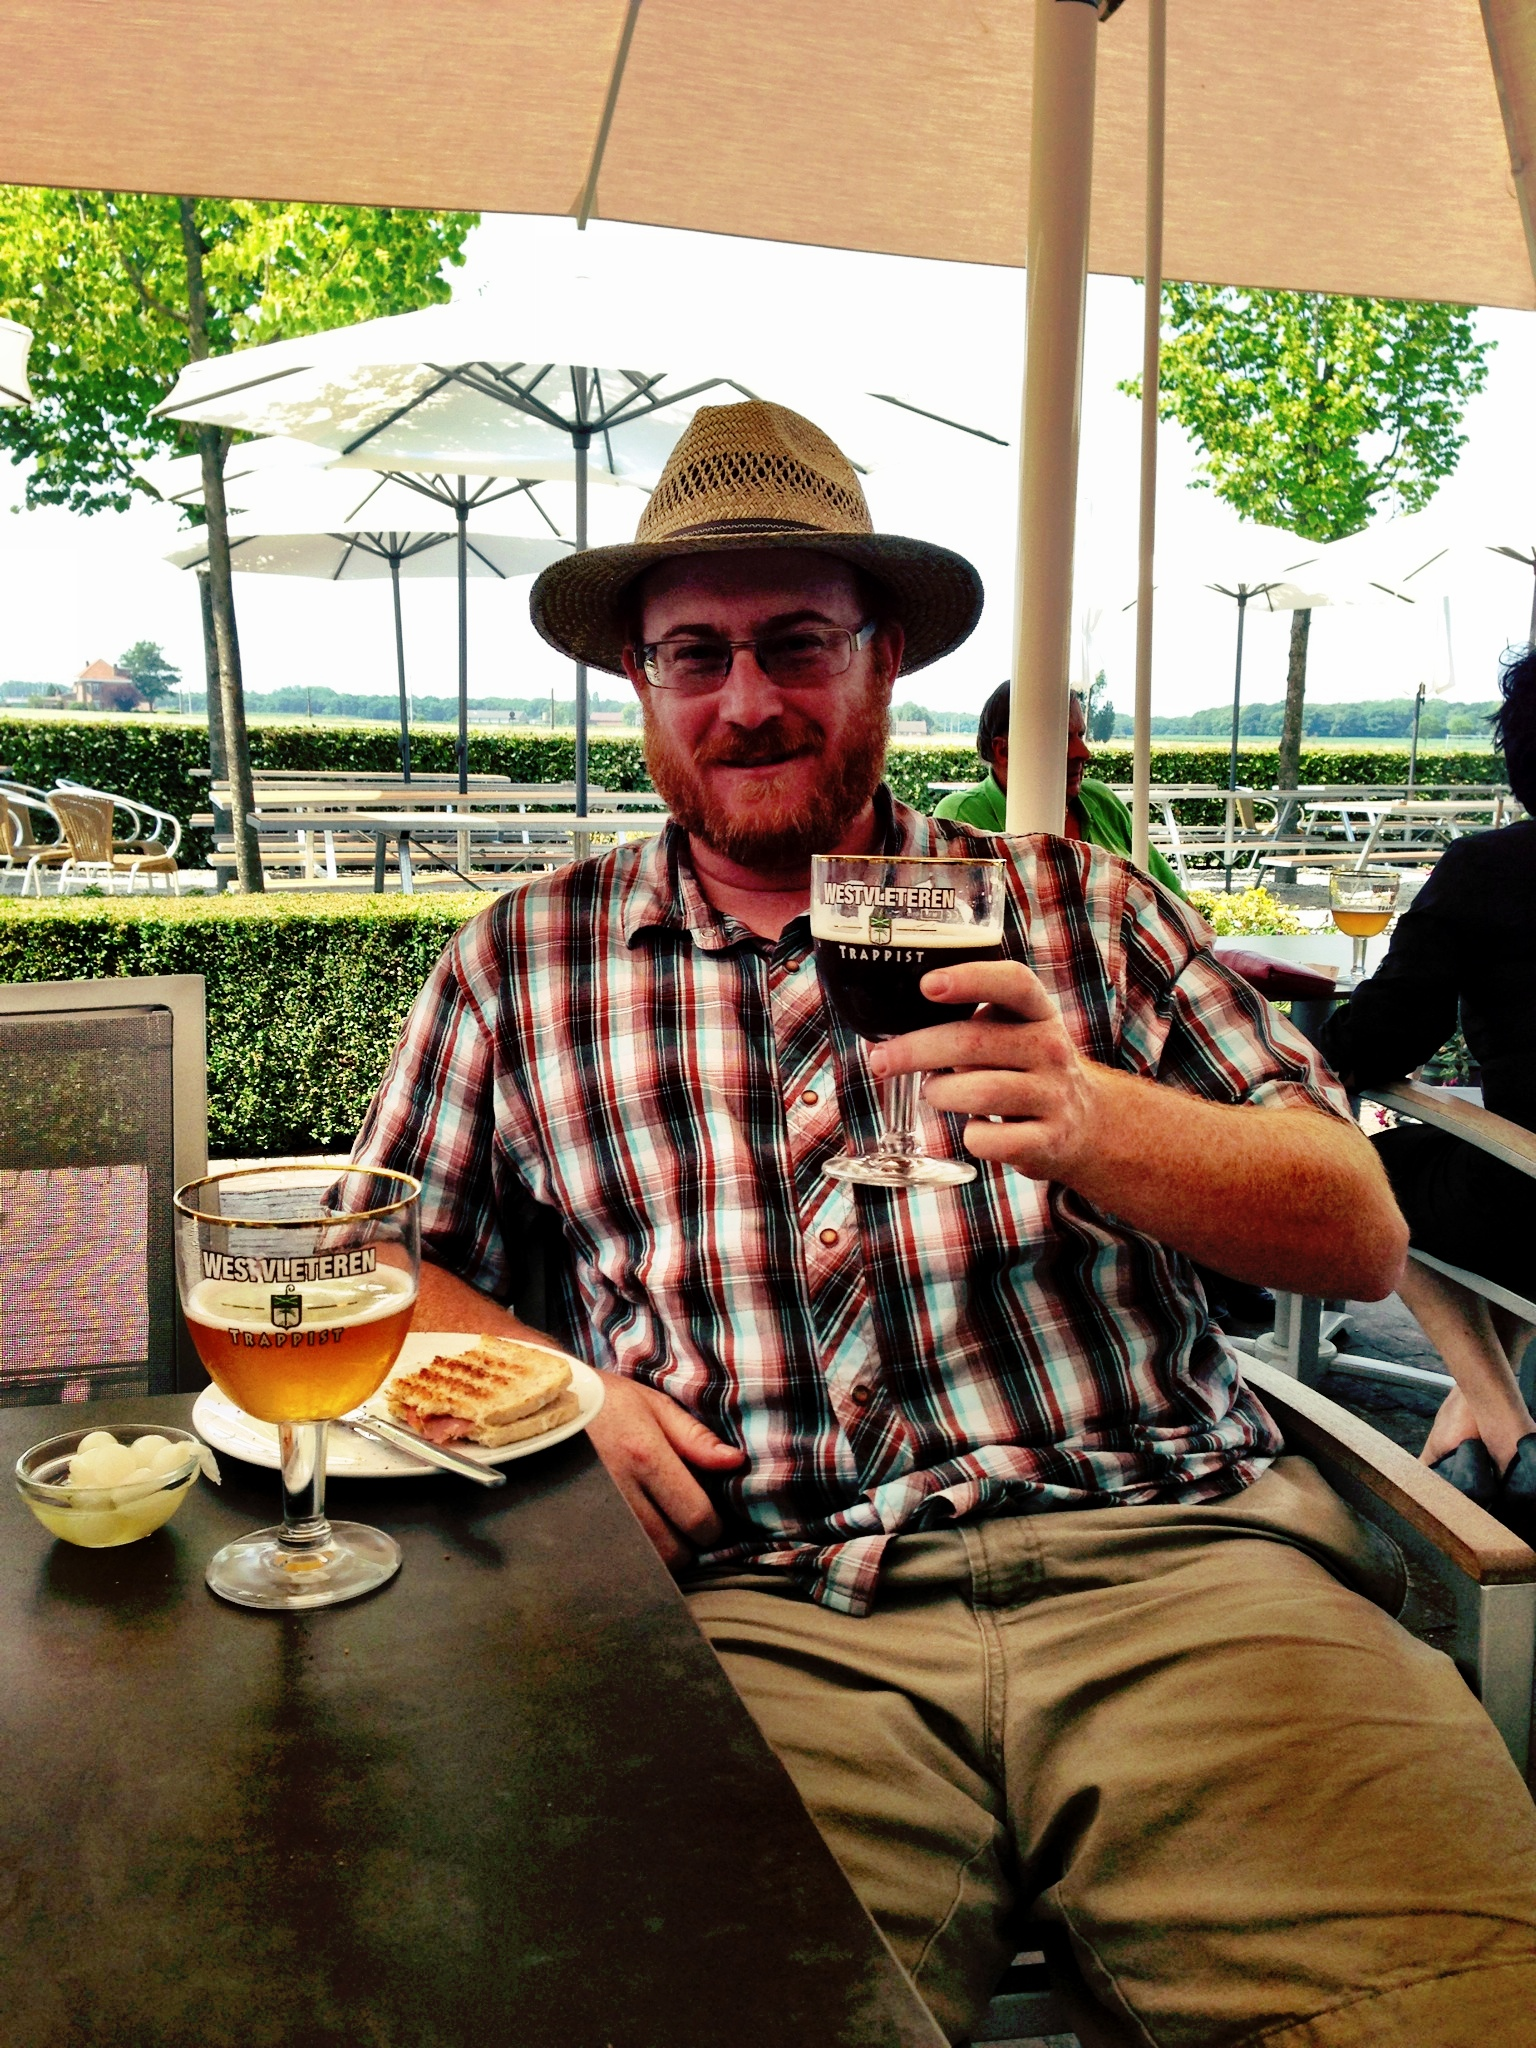 Chillin' at  Westvleteren Brewery